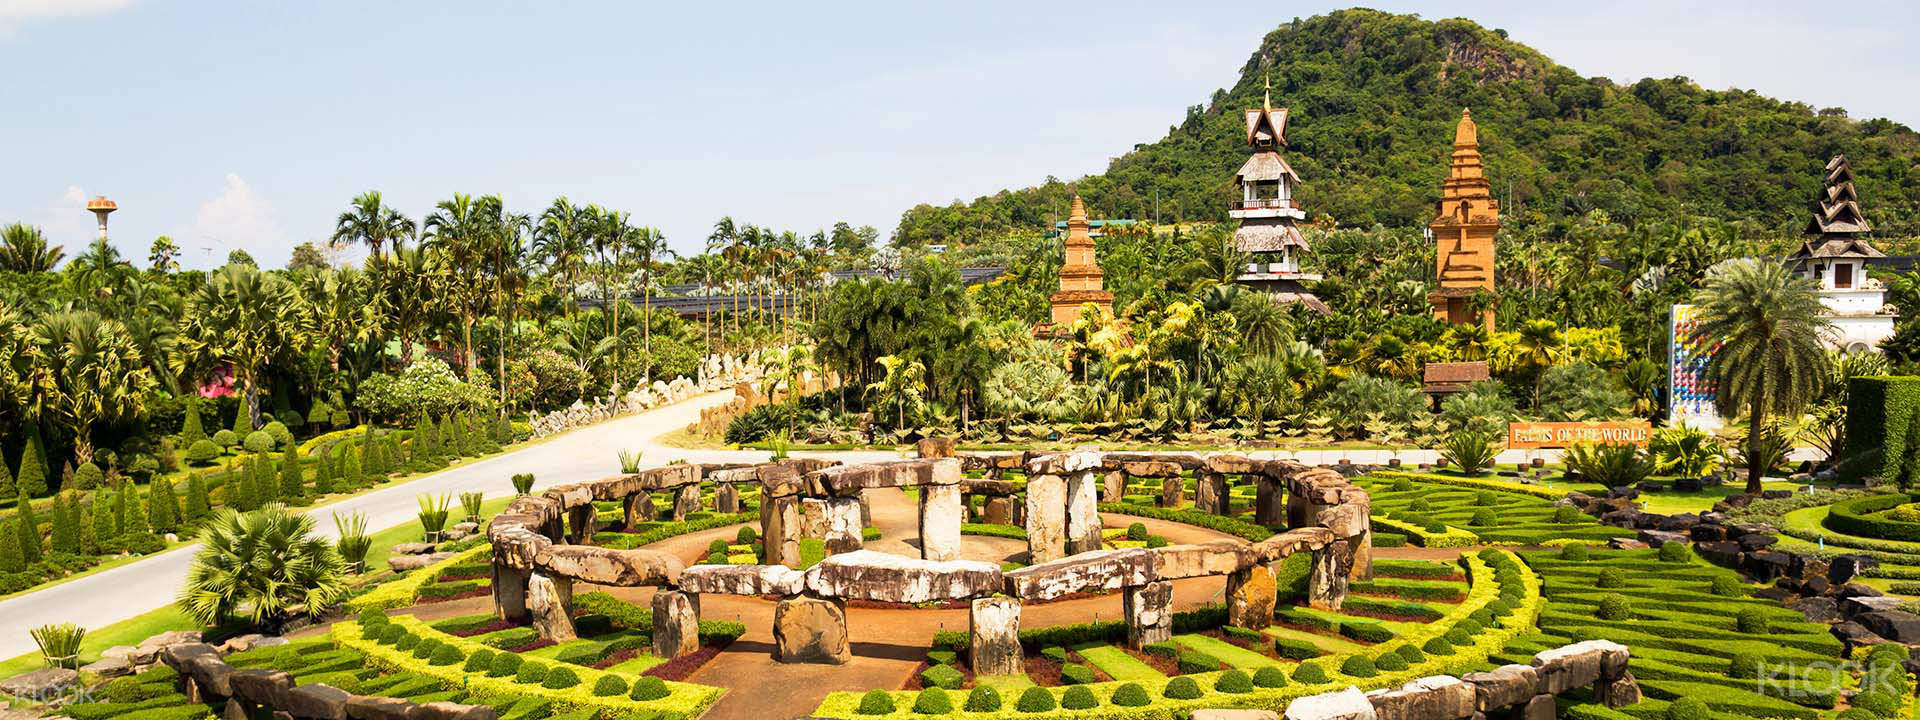 Log in. See more photos. Package OptionsWhat To ExpectActivity InformationHow To UseCancelation PolicyReviews FAQs. Home Pattaya Nong Nooch Tropical Garden